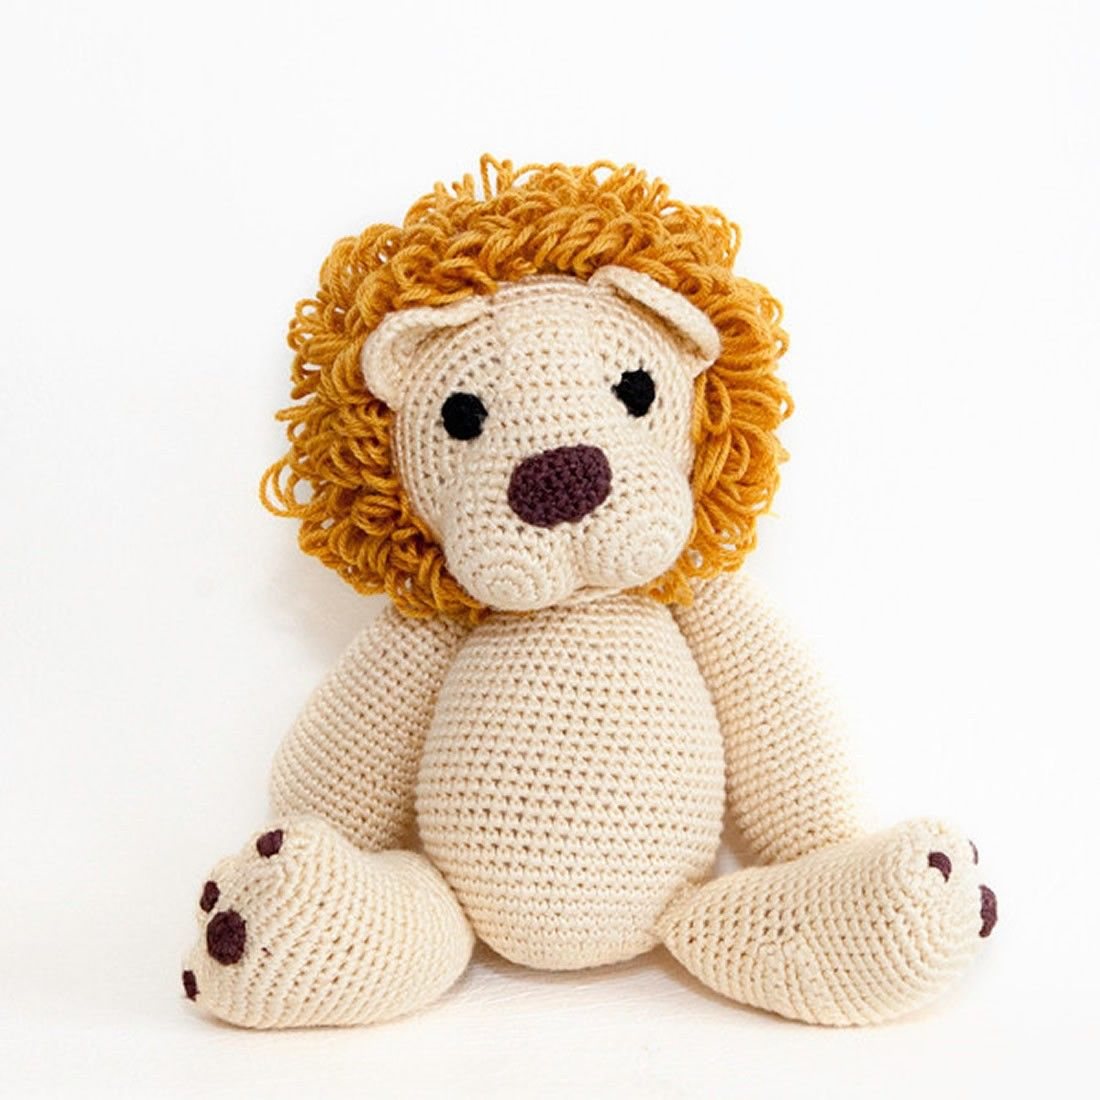 Nelson lion crocheted toy - soft toys + stuffed animals ...